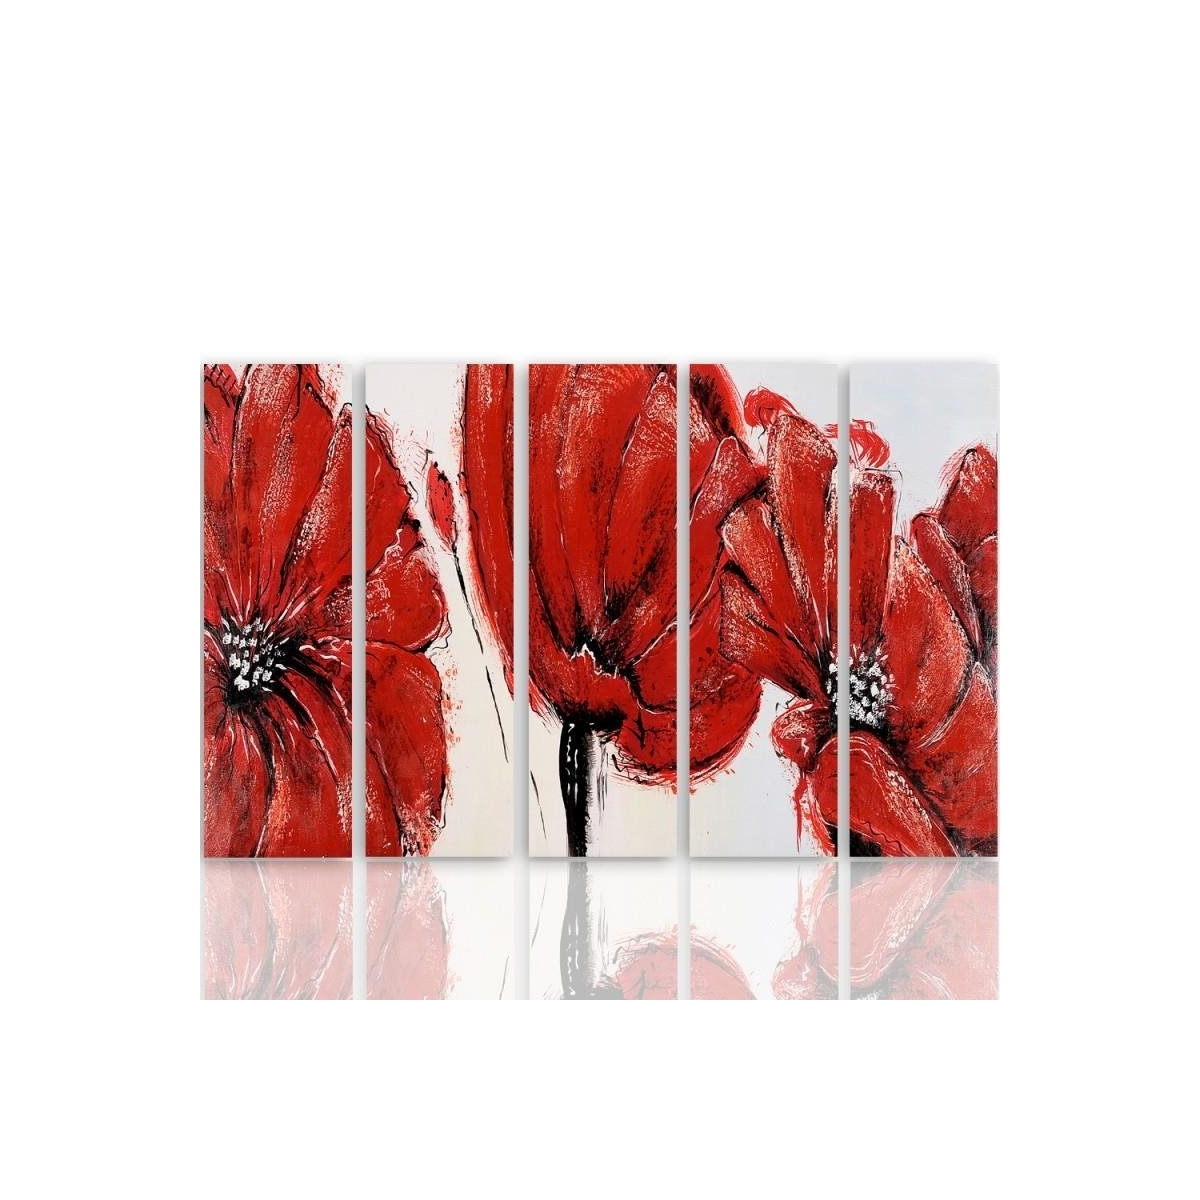 Five Part Picture On Canvas, Pentaptych, Type C, Red Flowers100x150